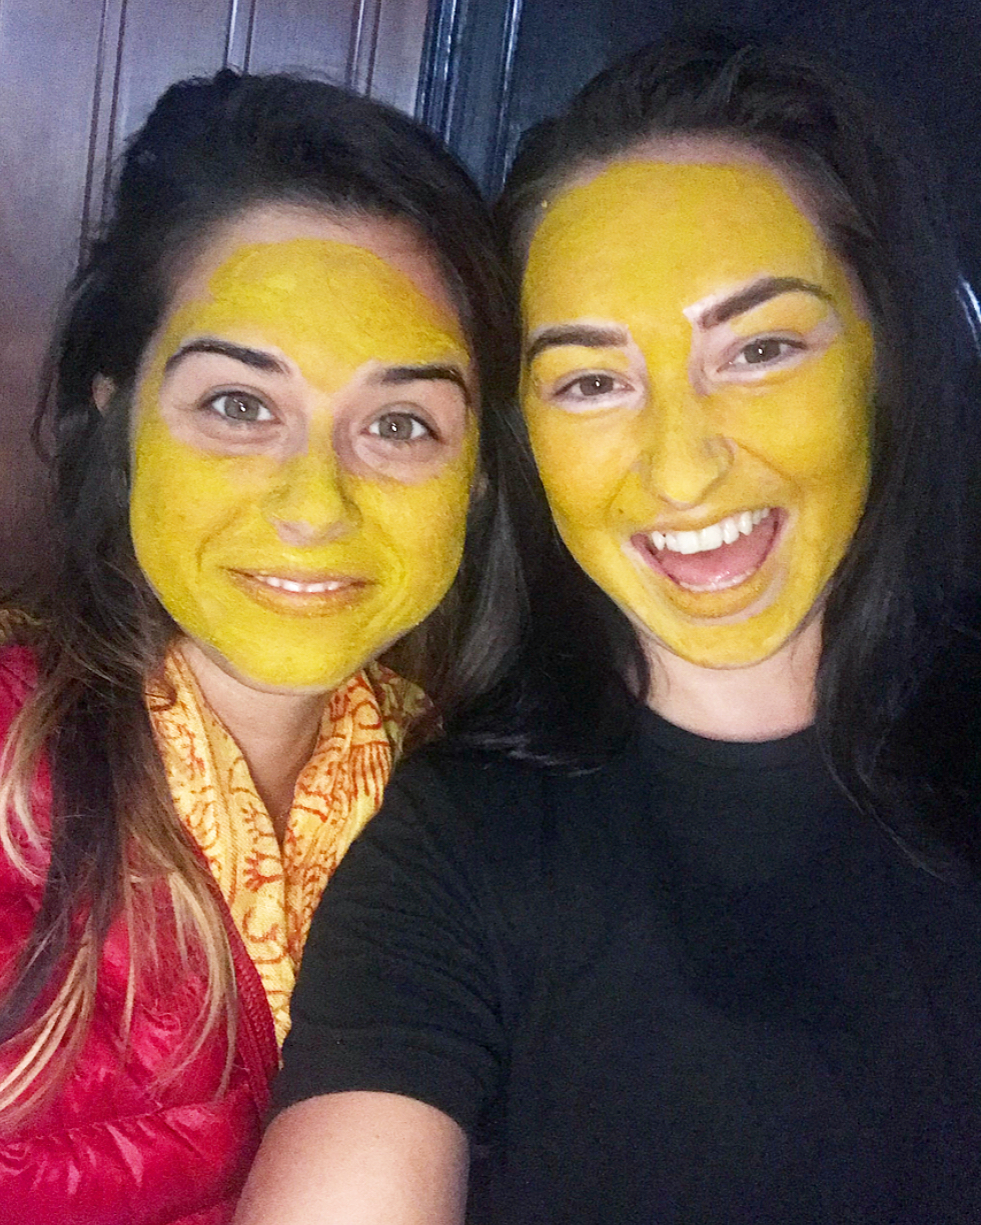 Decided to make our own turmeric face masks (which does the skin wonders by the way).